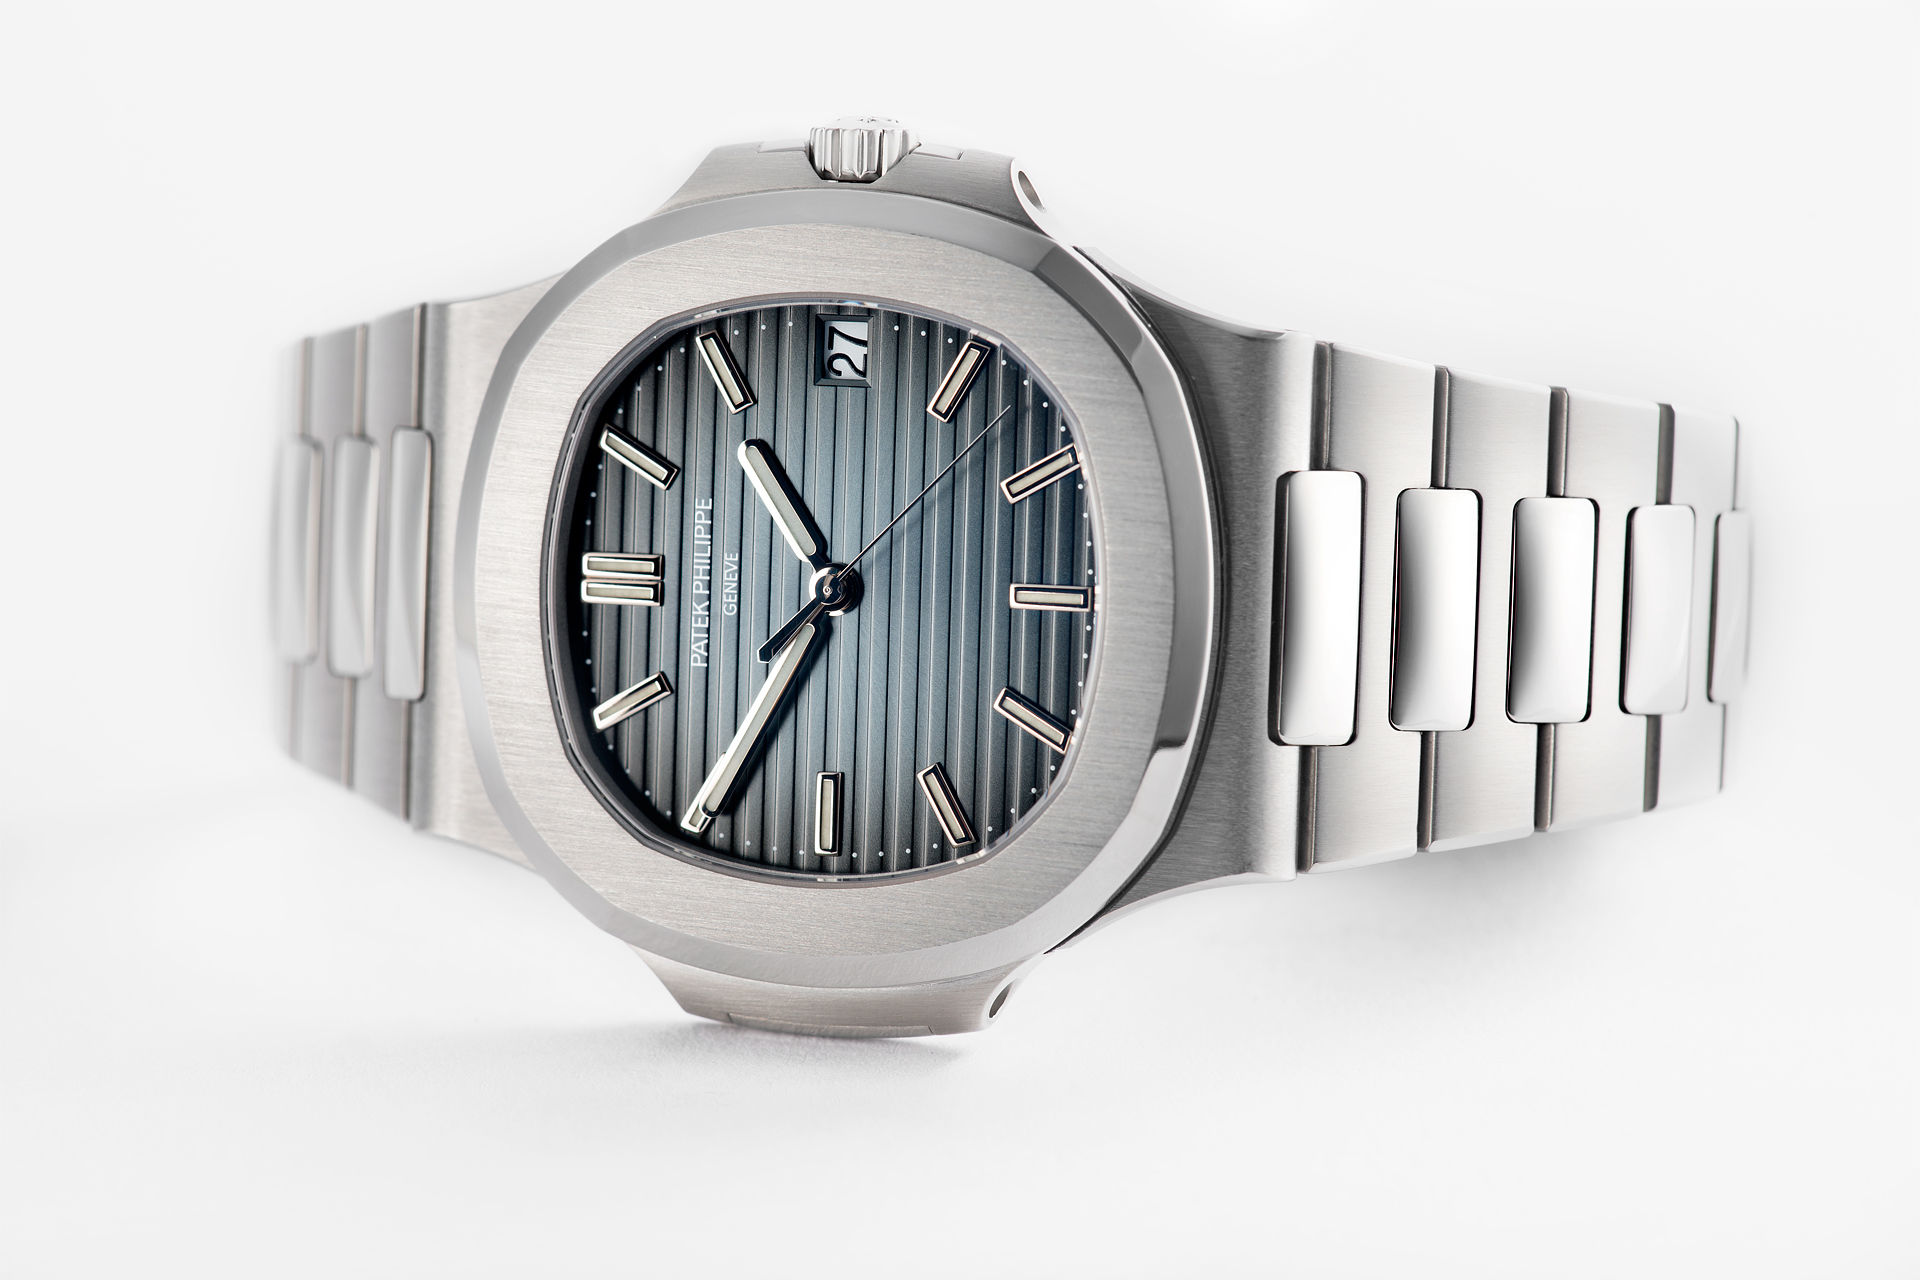 ref 5711/1A-010 | Like New Condition | Patek Philippe Nautilus